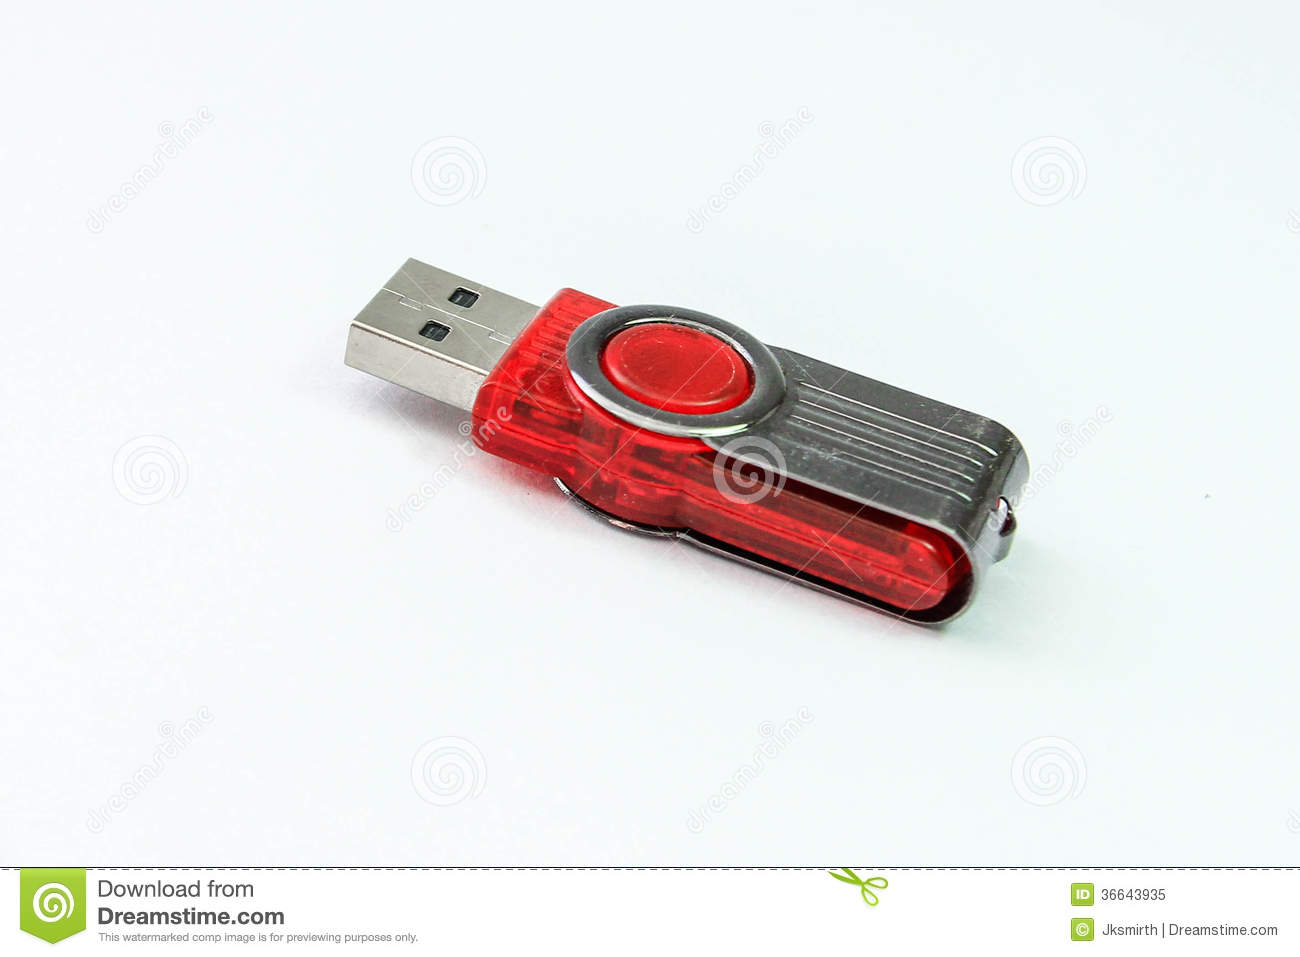 how to save photos on a usb flash drive